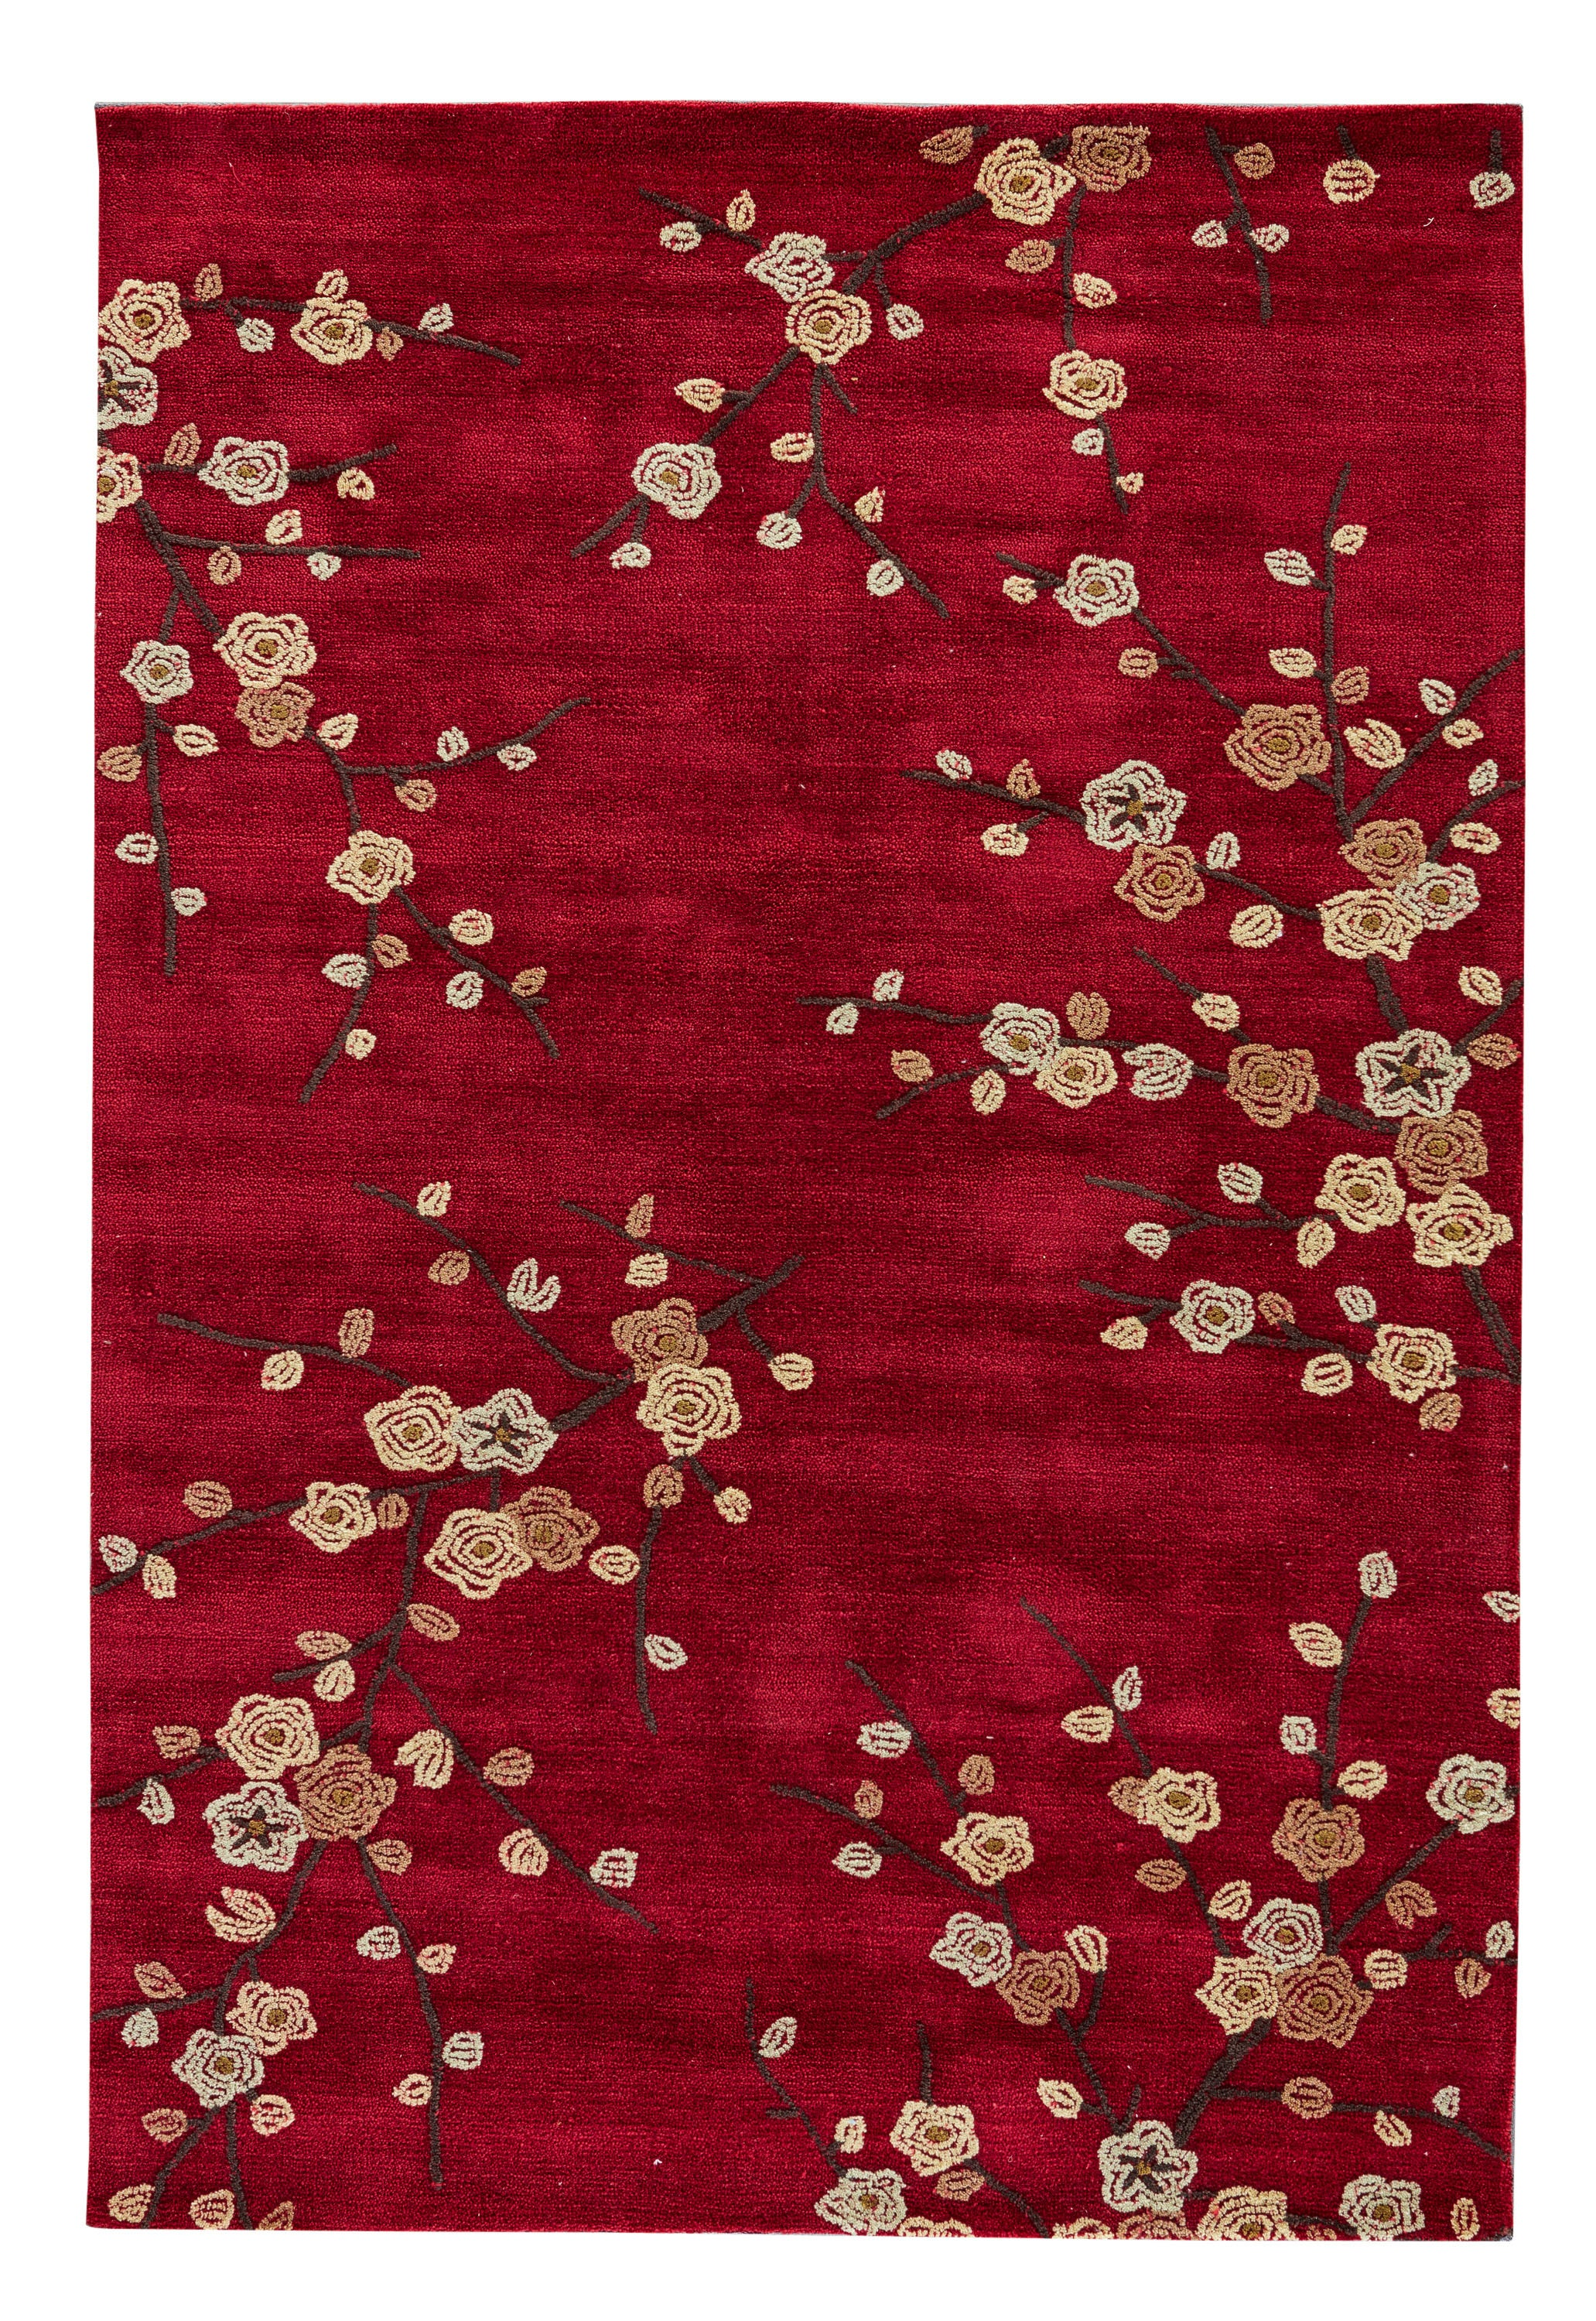 Rectangle, Round 5x76 Red Floral Hand Tufted Synthetics Transitional recommended for Bedroom, Bathroom, Dining Room, Office, Hallway, Living Room